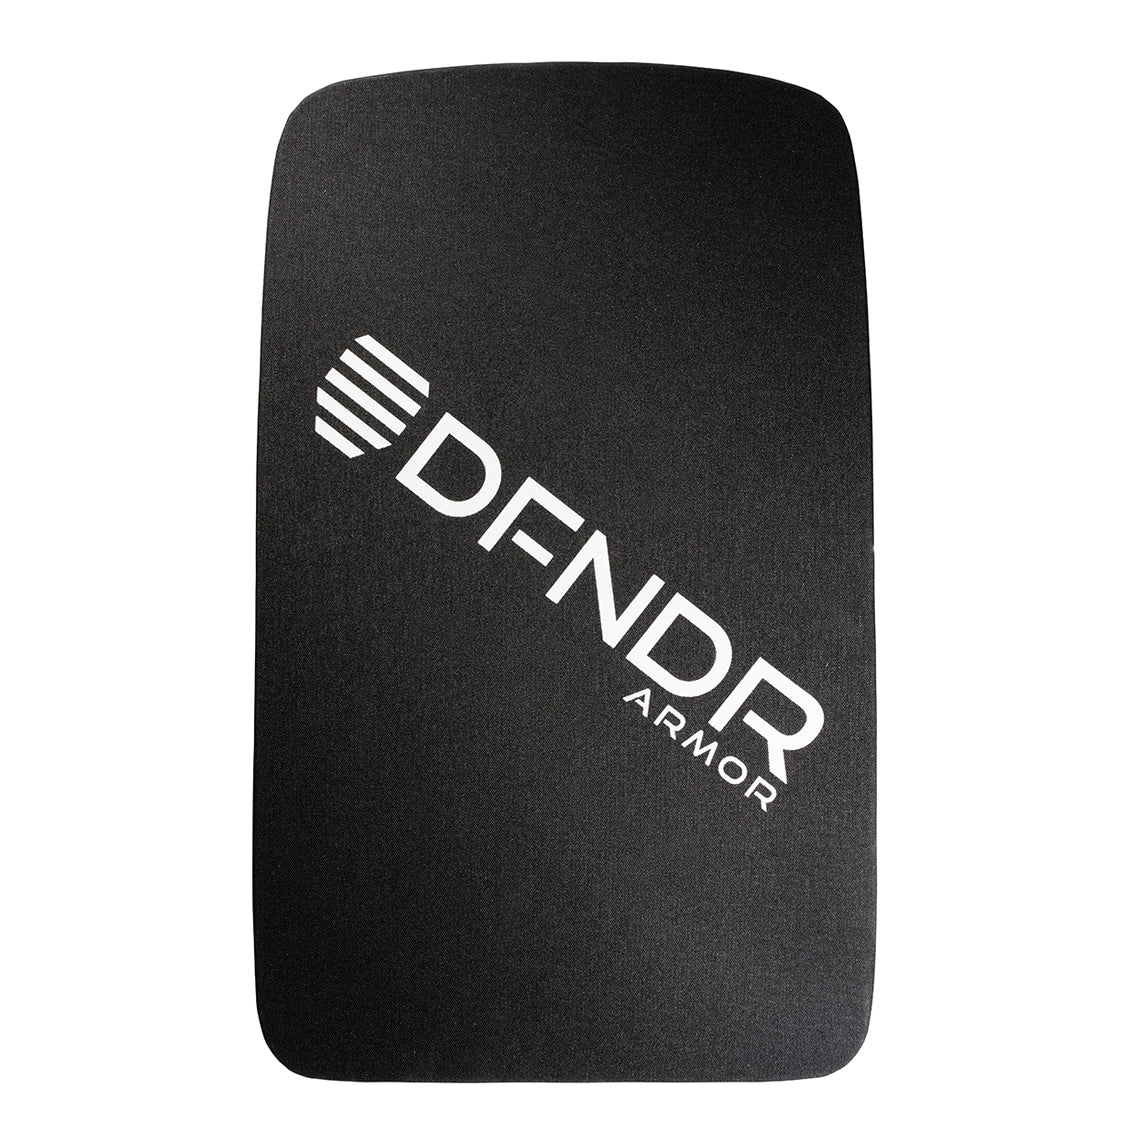 DFNDR Armor LEVEL IIIA HANDGUN RATED BACKPACK ARMOR